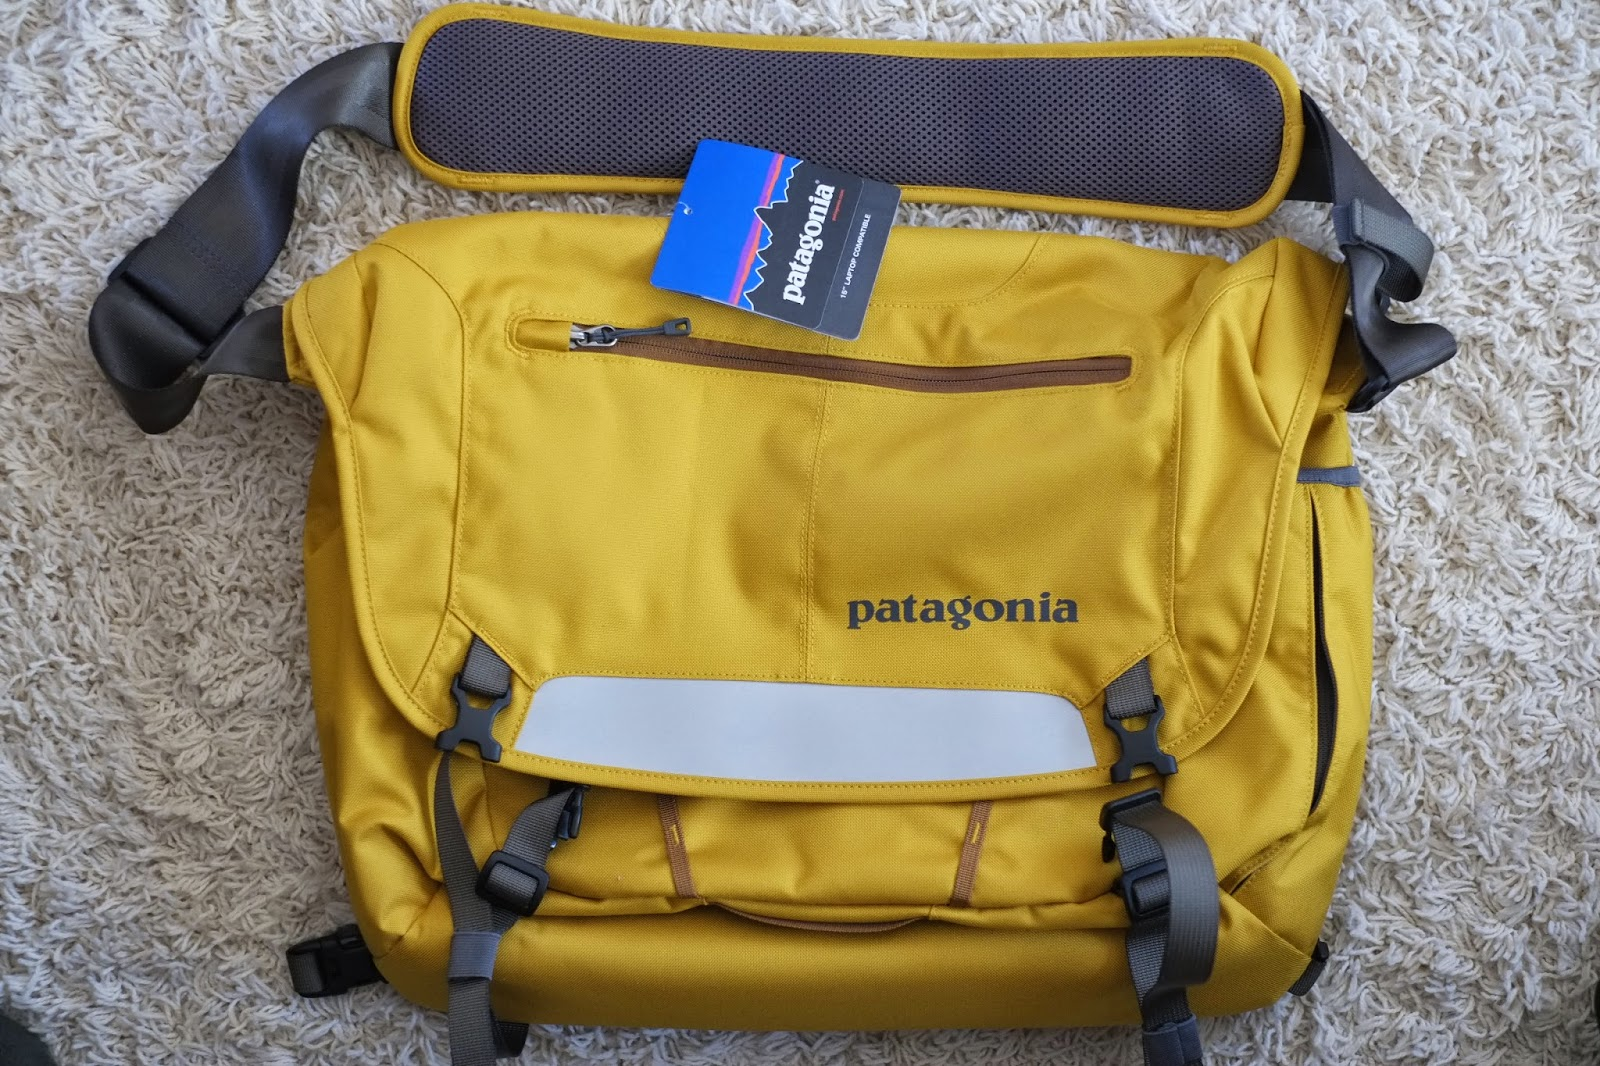 Patagonia Half Mass Messenger Bag Video Review (Features Score  5.5 ... fa4f8b7c4f52d